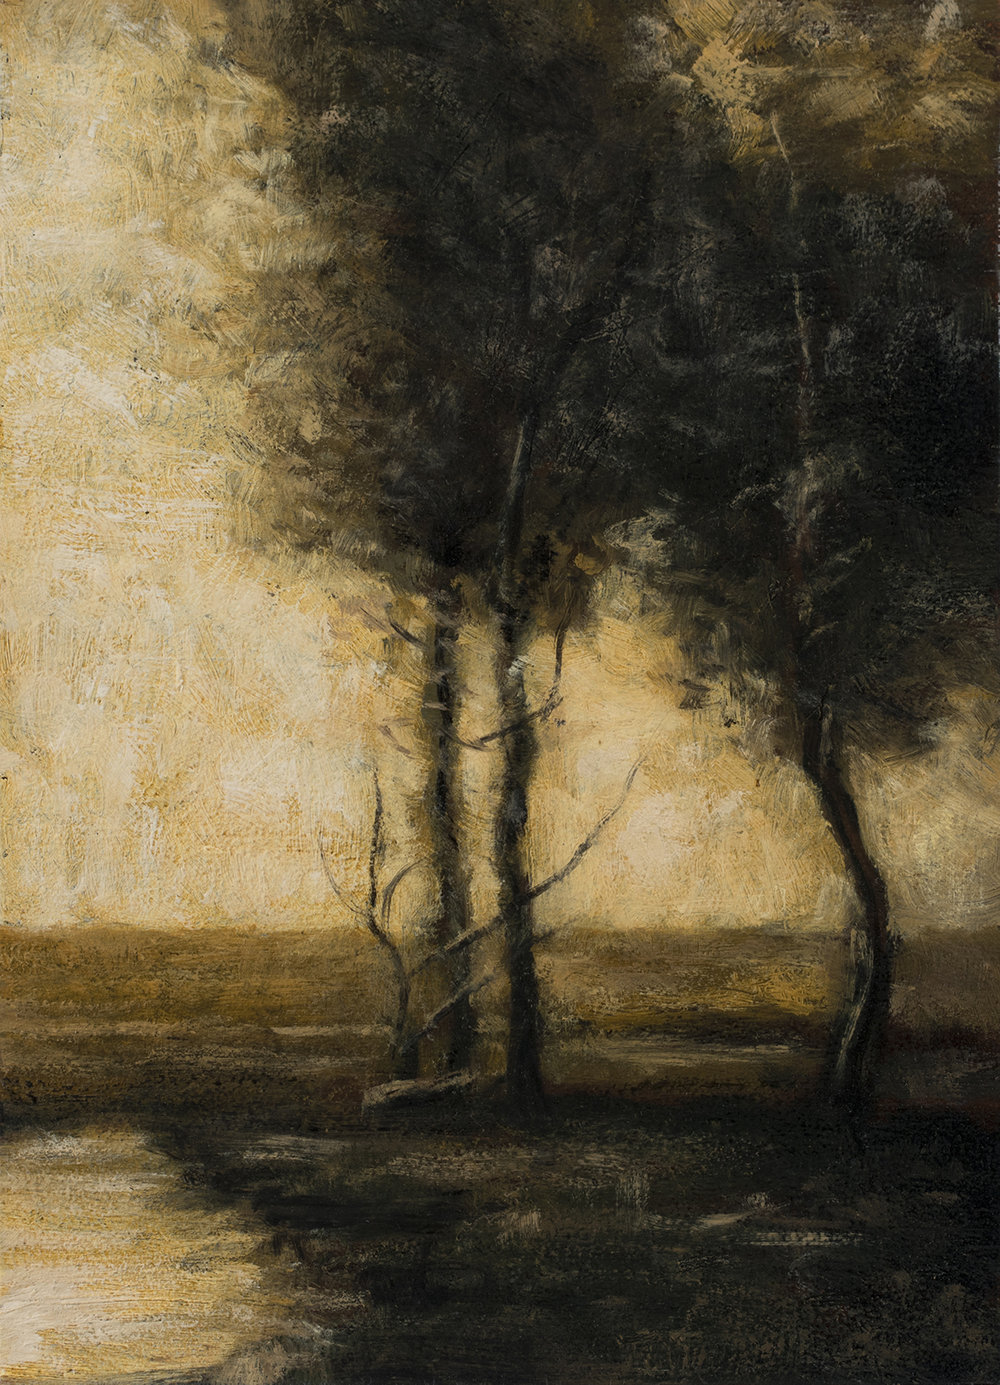 Study after: John Francis Murphy - Landscape by M Francis McCarthy - 5x7 Oil on Wood Panel